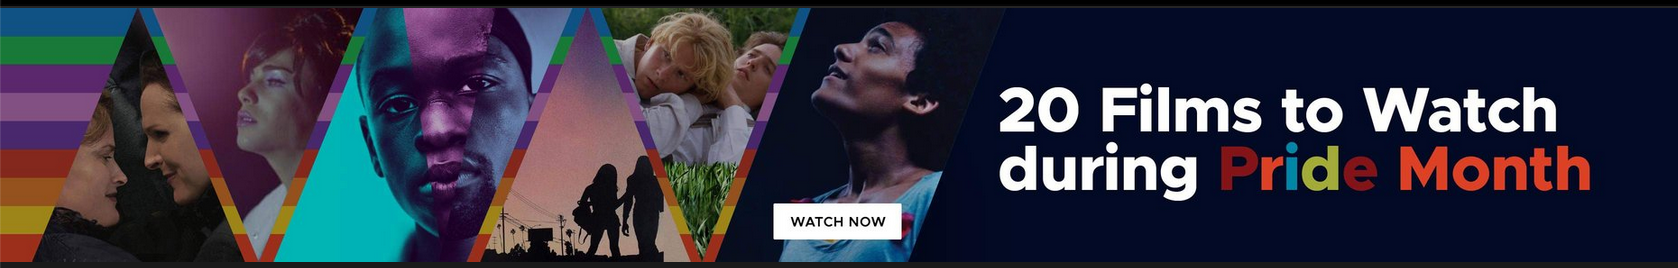 20 Films to Watch During Pride Month